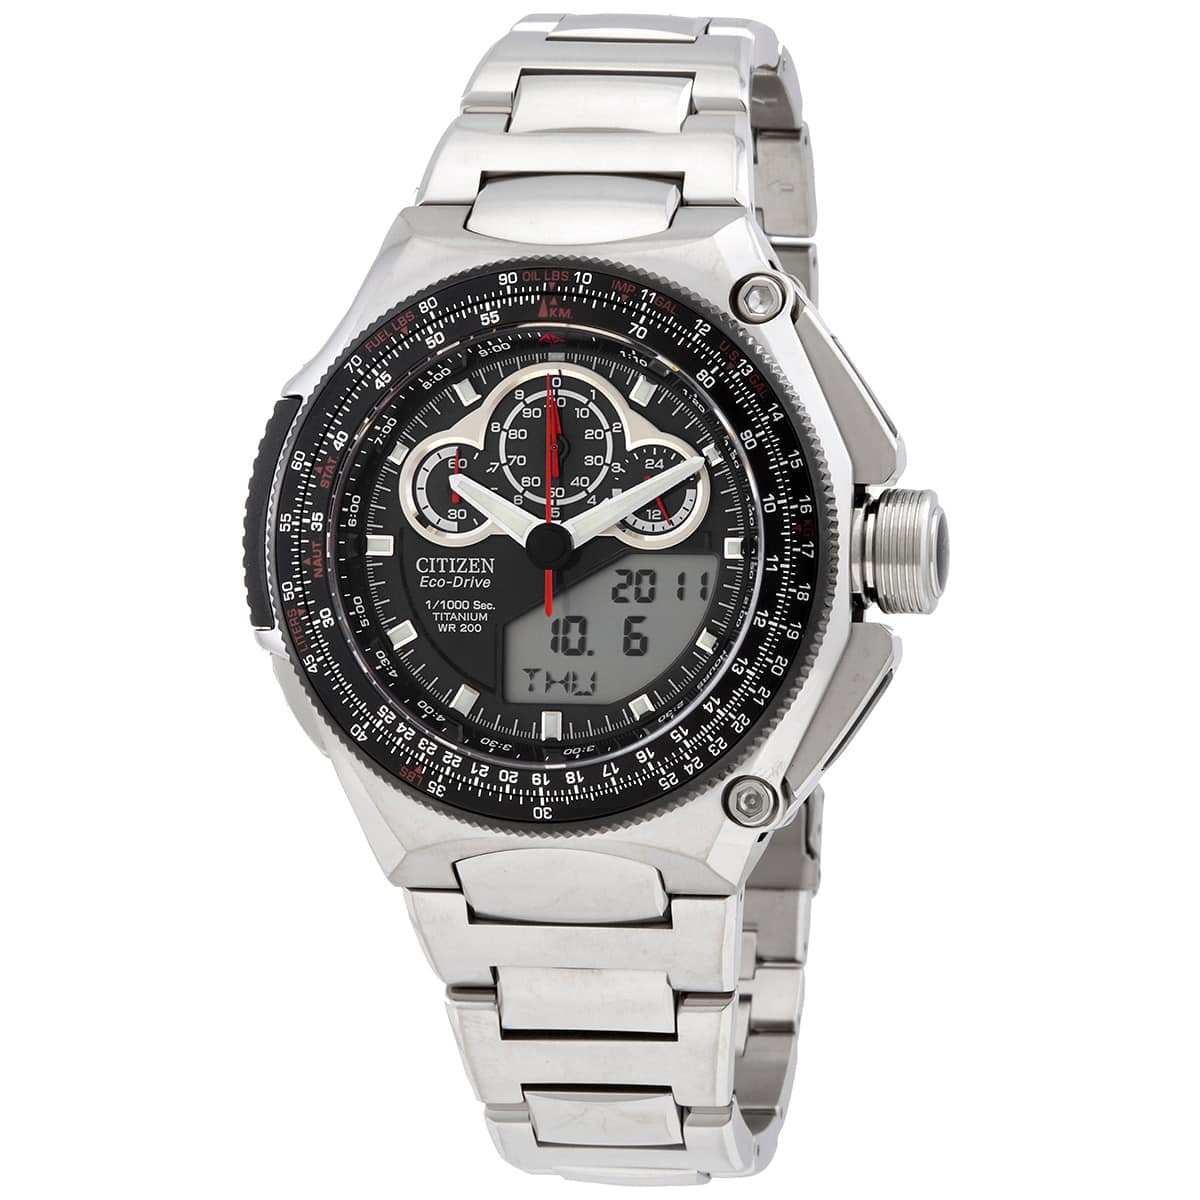 Citizen Eco-Drive Alarm Chronograph Analog-Digital Titanium Watch on Bracelet $349 + free s/h